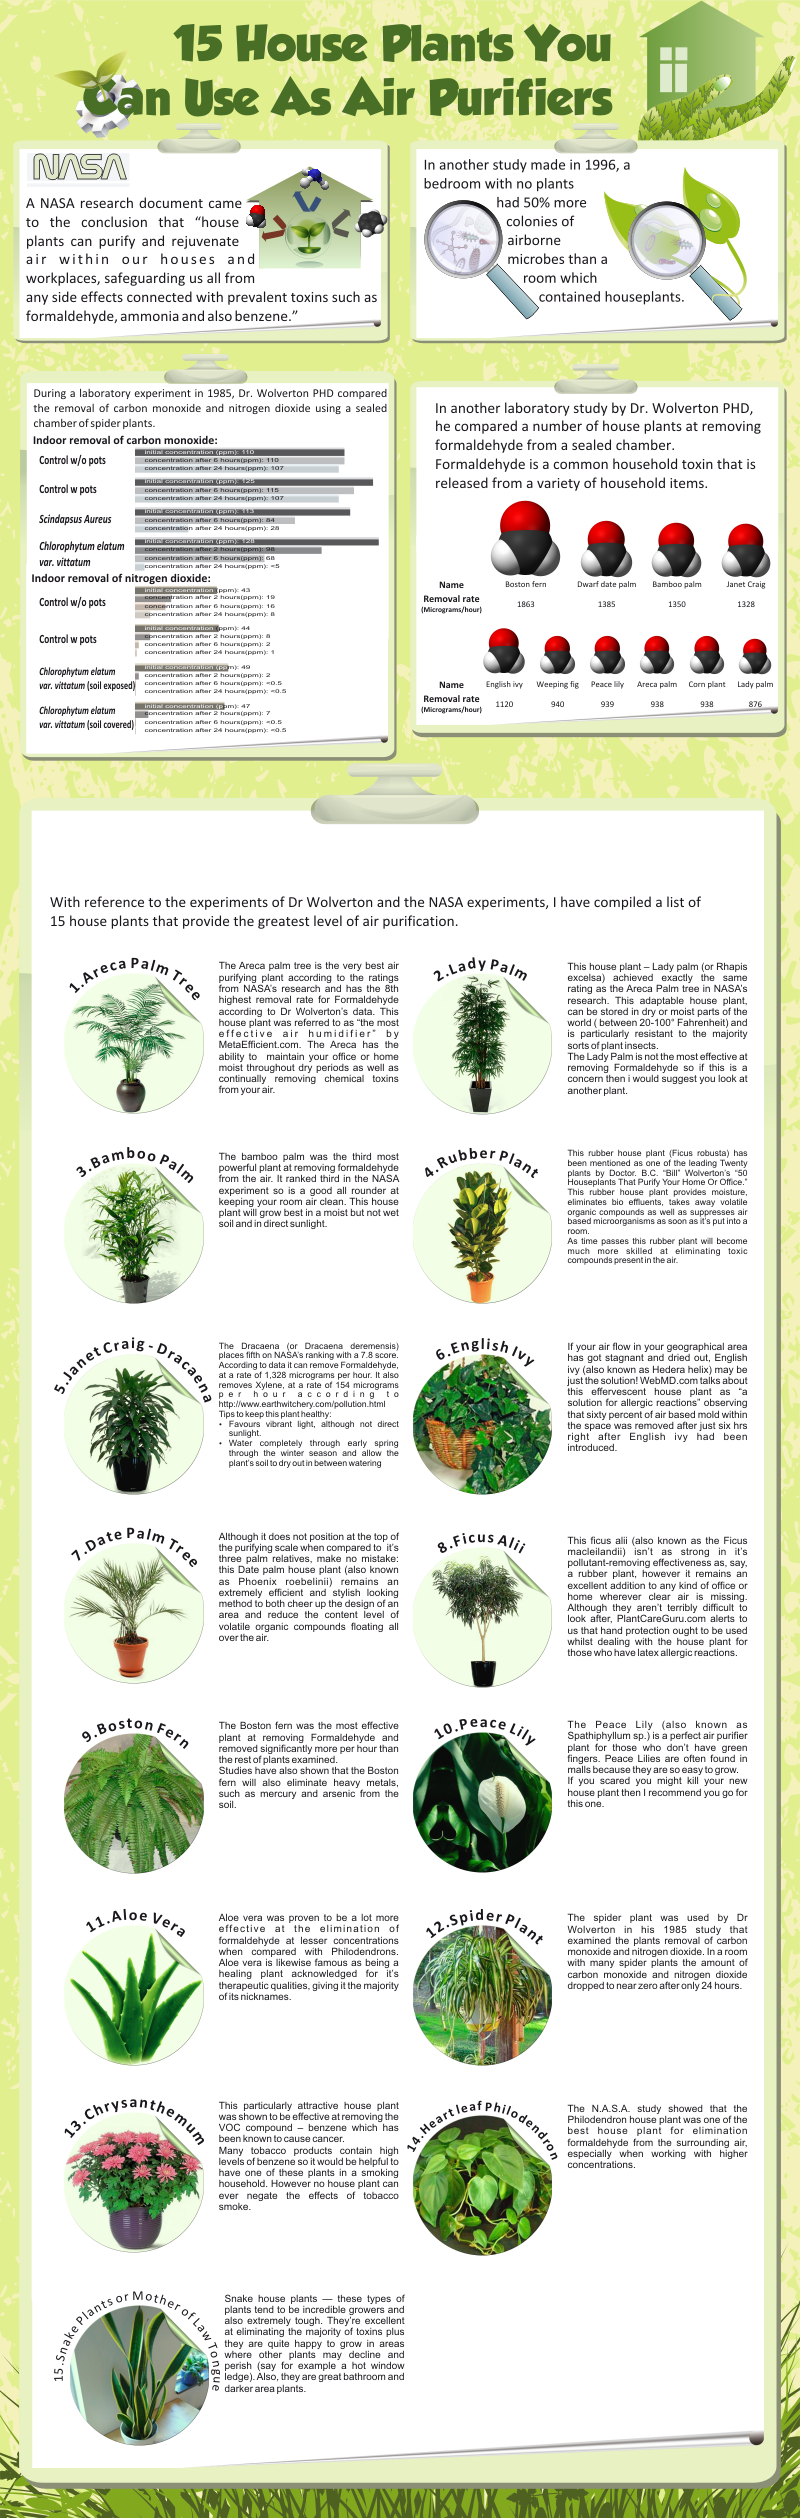 15 air purifying house plants. Variegated Spider Plant ... House Plant Chart on weed chart, house paint chart, house color chart, vegetables chart, fish chart, house cat chart, poisonous plants chart, house garden chart, fern chart, house building chart, flower chart, bird chart, house animals chart, apple chart, herb chart,